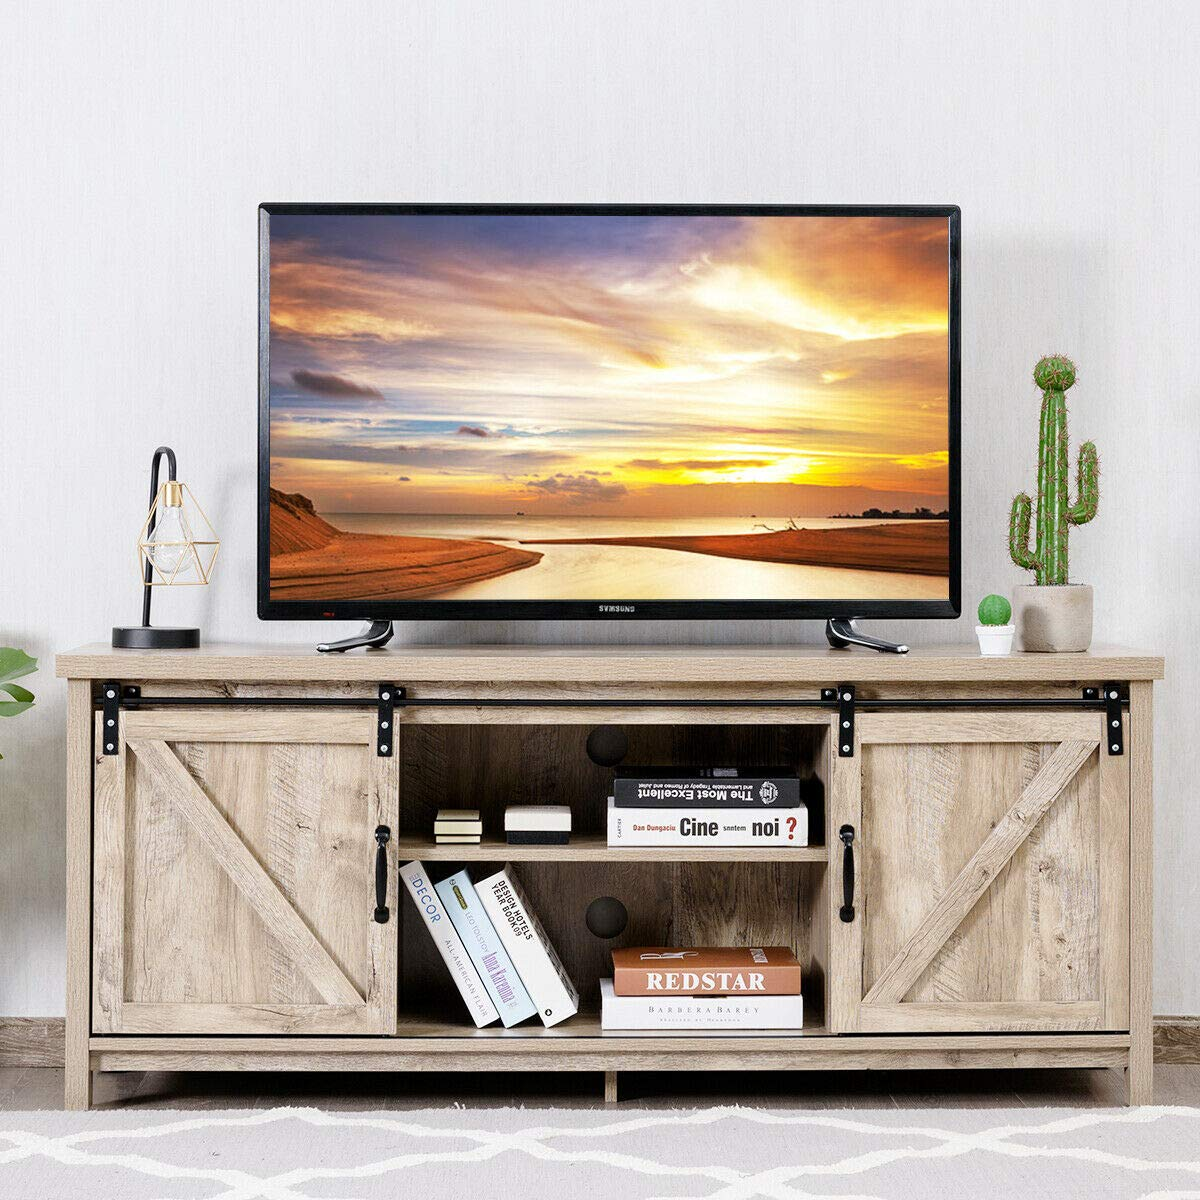 """Tangkula TV Stand for 60"""" Television, TV Ark with Sliding Barn Doors, Wooden TV Cabinet with 2 Center Compartments and 2 Cabinets, Console Storage Table with Cabinet, Natural Design (White Oak)"""